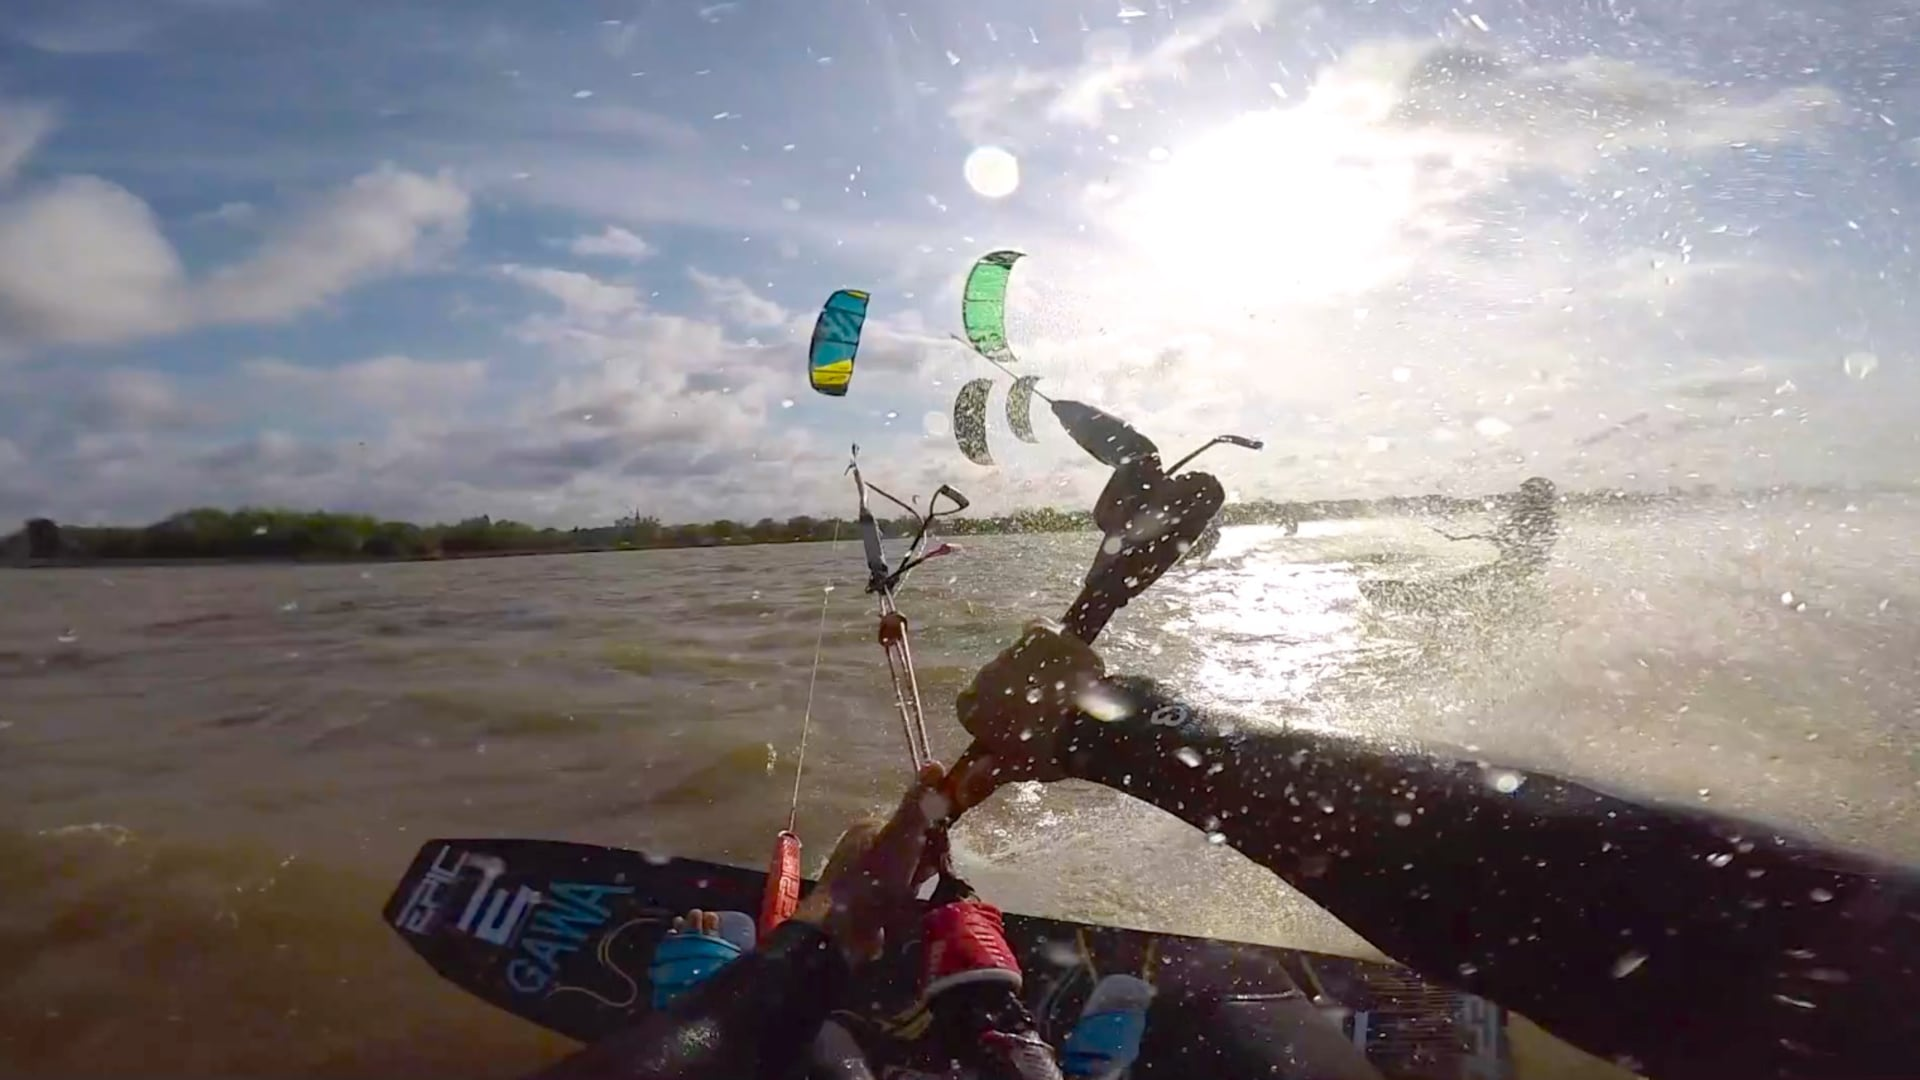 Argentina Youth Olympic Games training day - with Epic Kites Kiteboarding